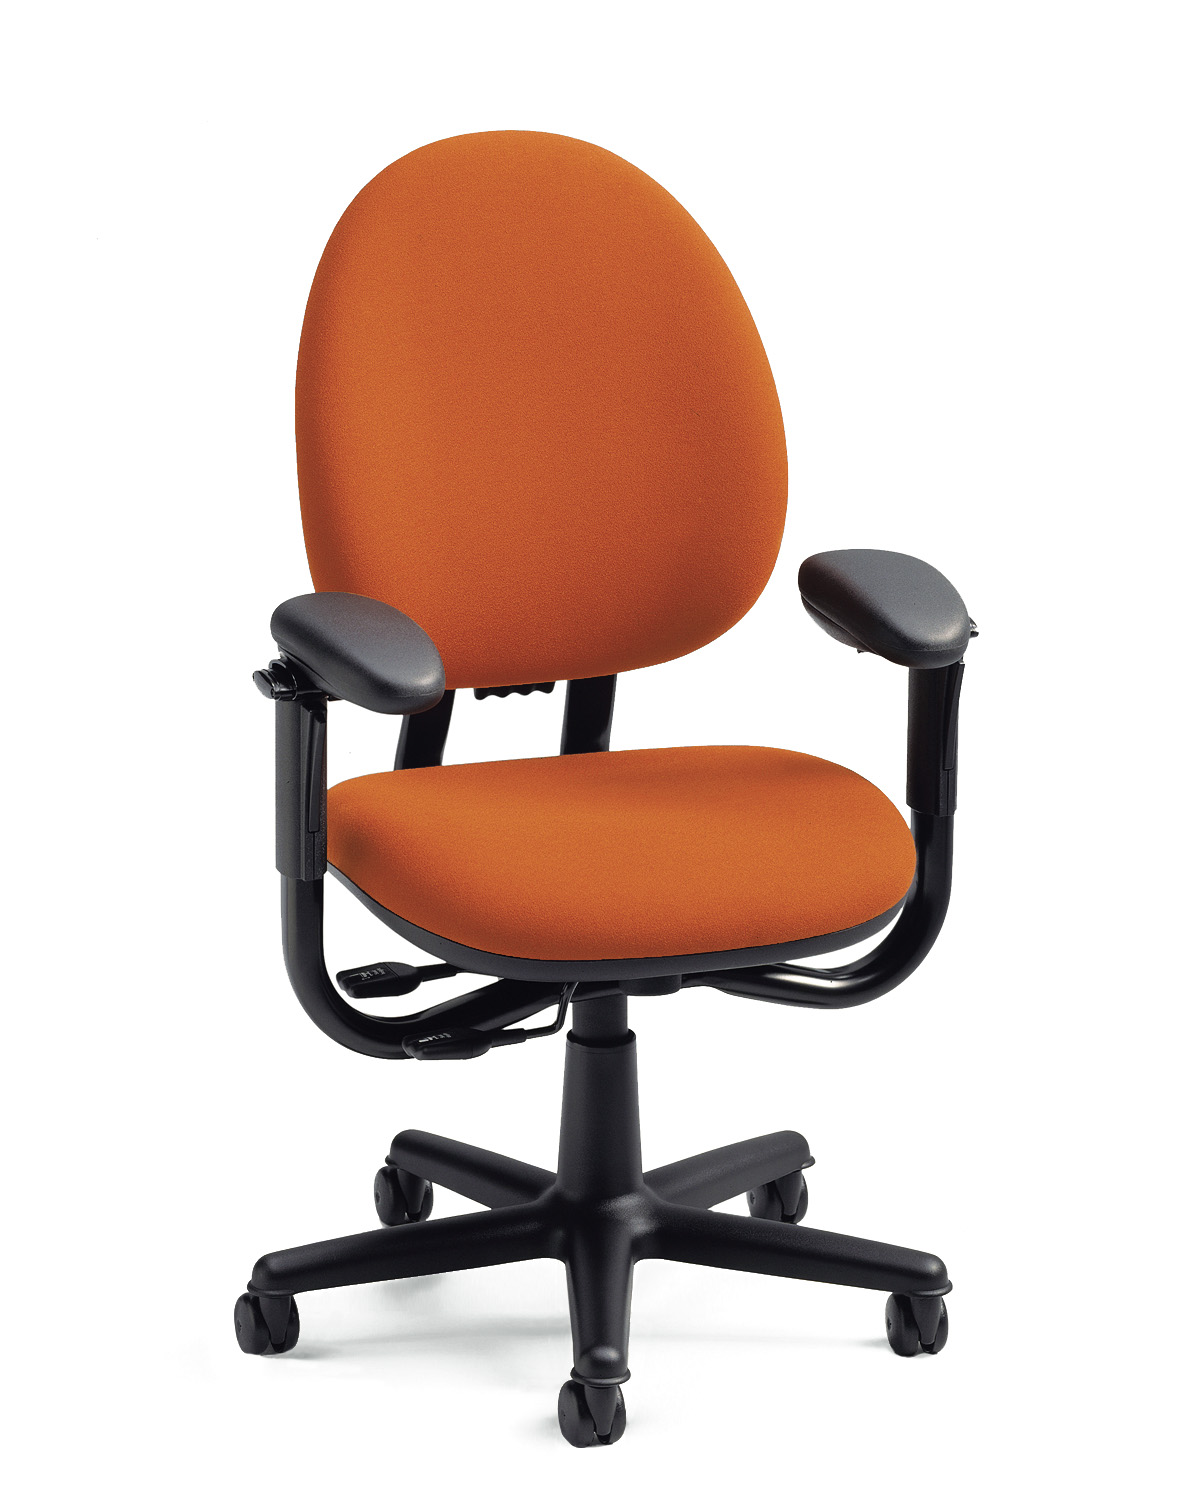 Criterion chair